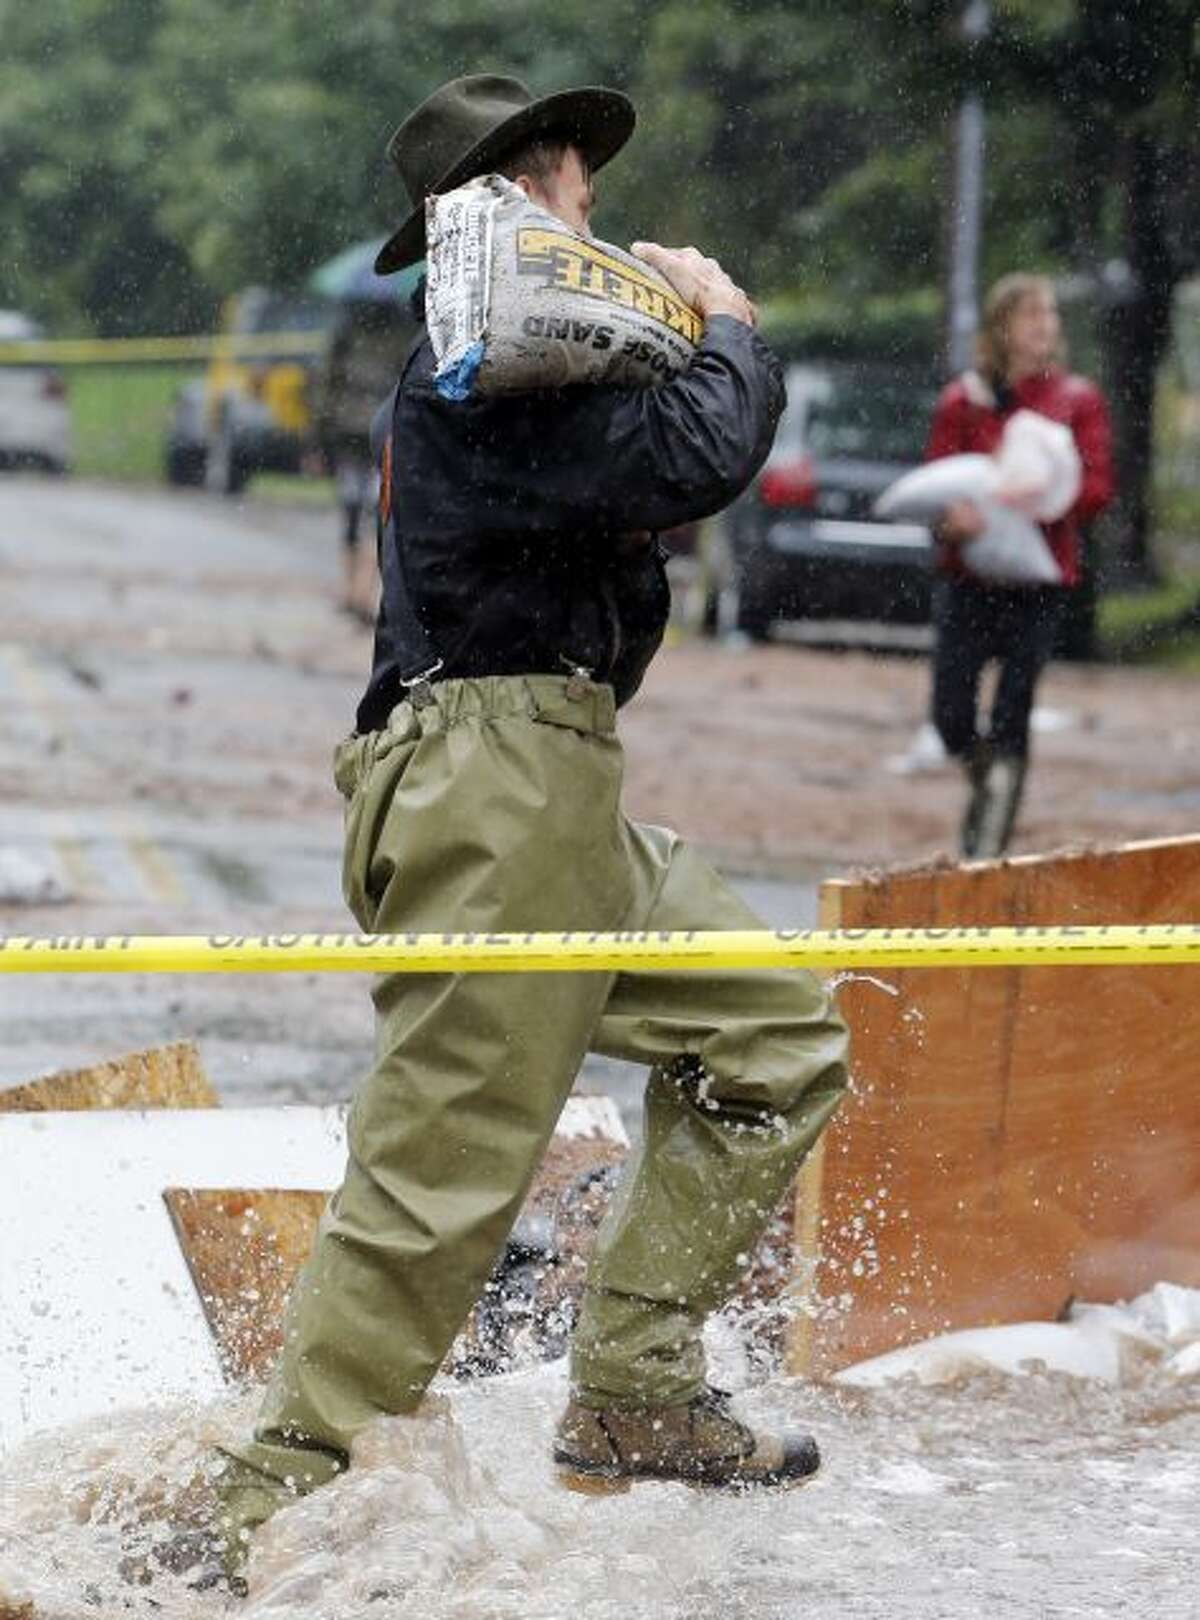 A man carries a sandbag through flood waters as residence of an apartment house work to divert flood water from their building in Boulder, Colo., on Thursday, Sept. 12, 2013. Flash flooding in Colorado has cut off access to towns, closed the University of Colorado in Boulder and left at least three people dead. (AP Photo/Ed Andrieski)